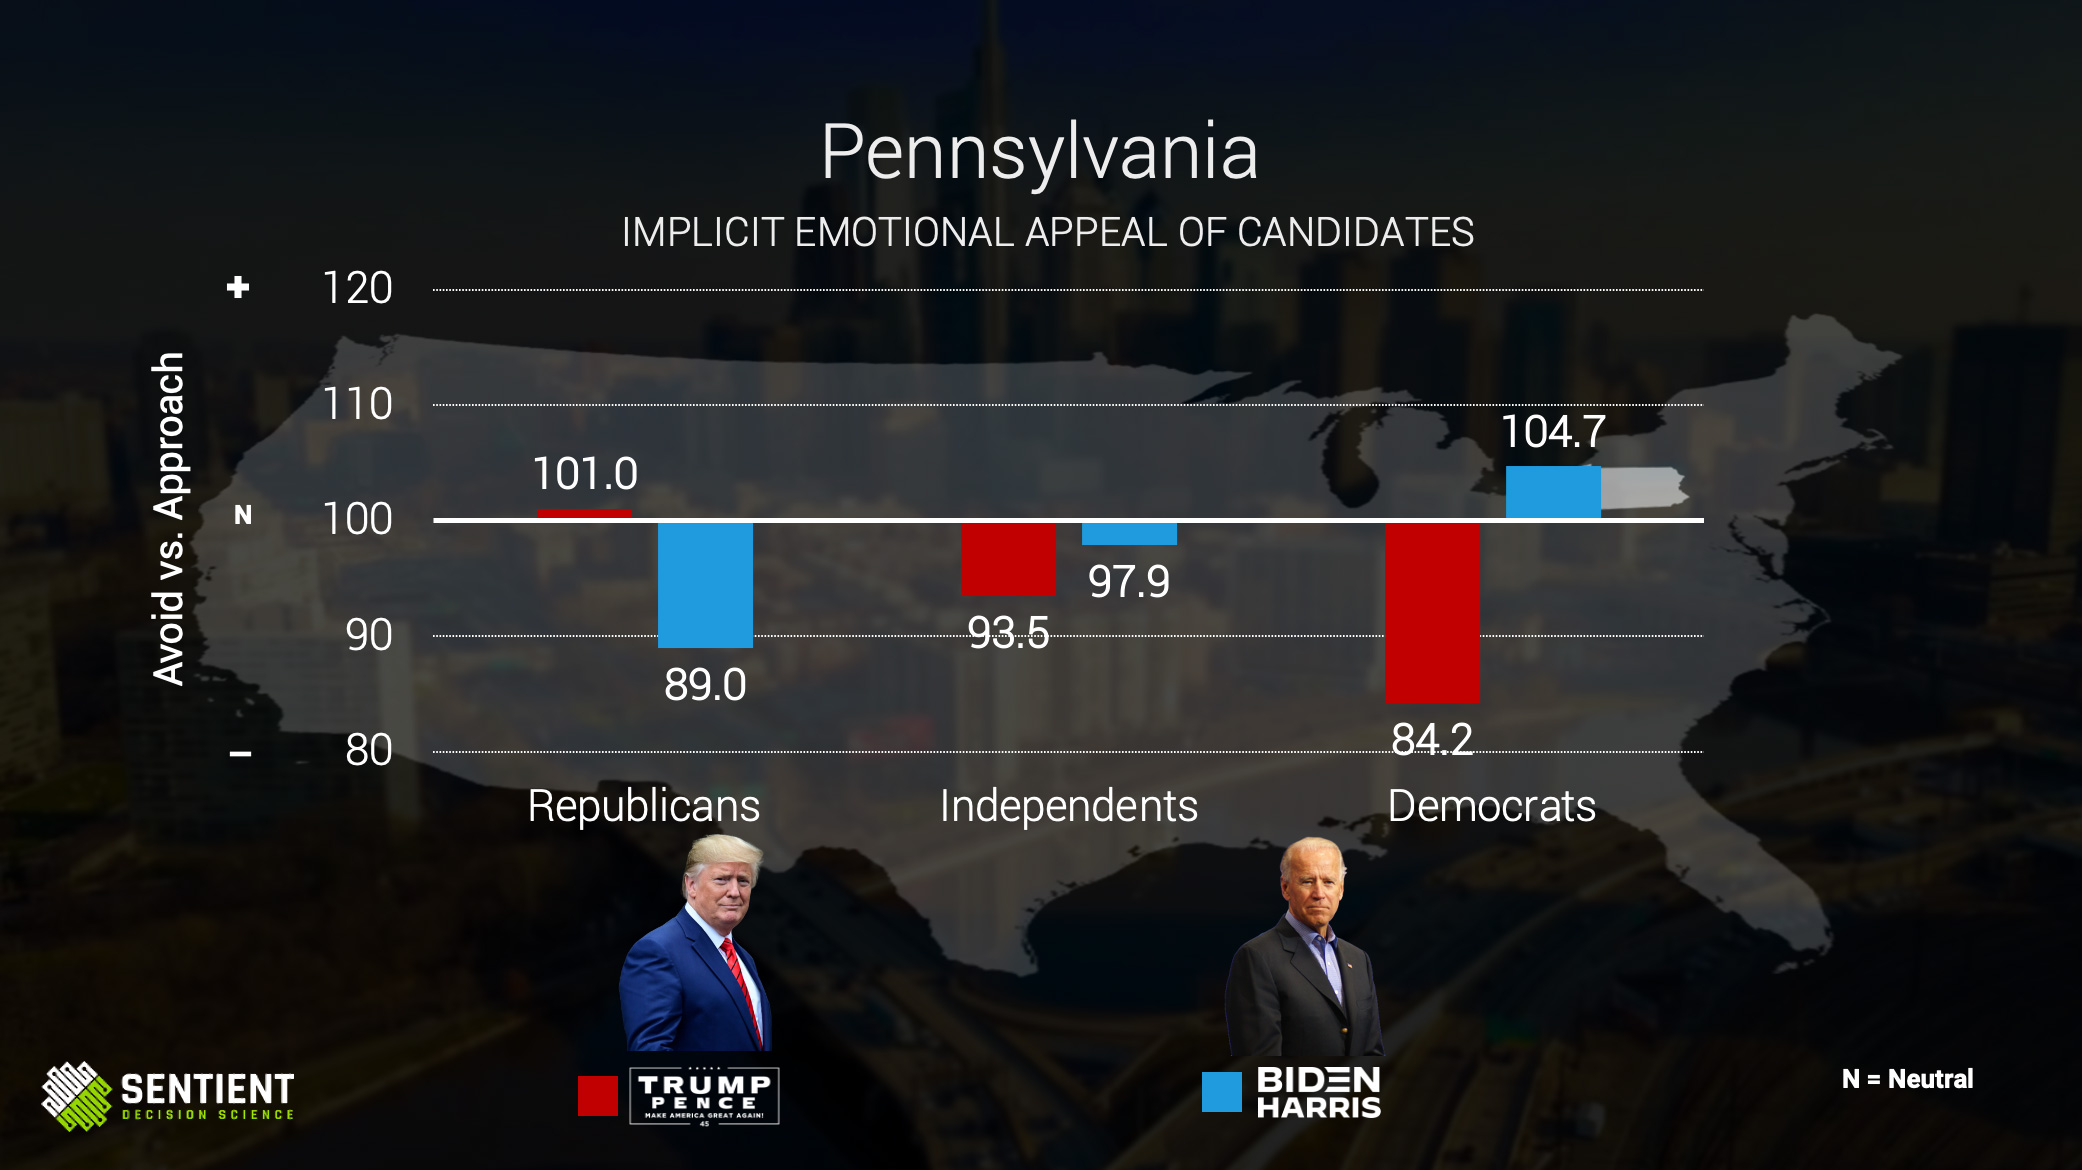 Pennsylvania Implicit Emotional Appeal of Candidates